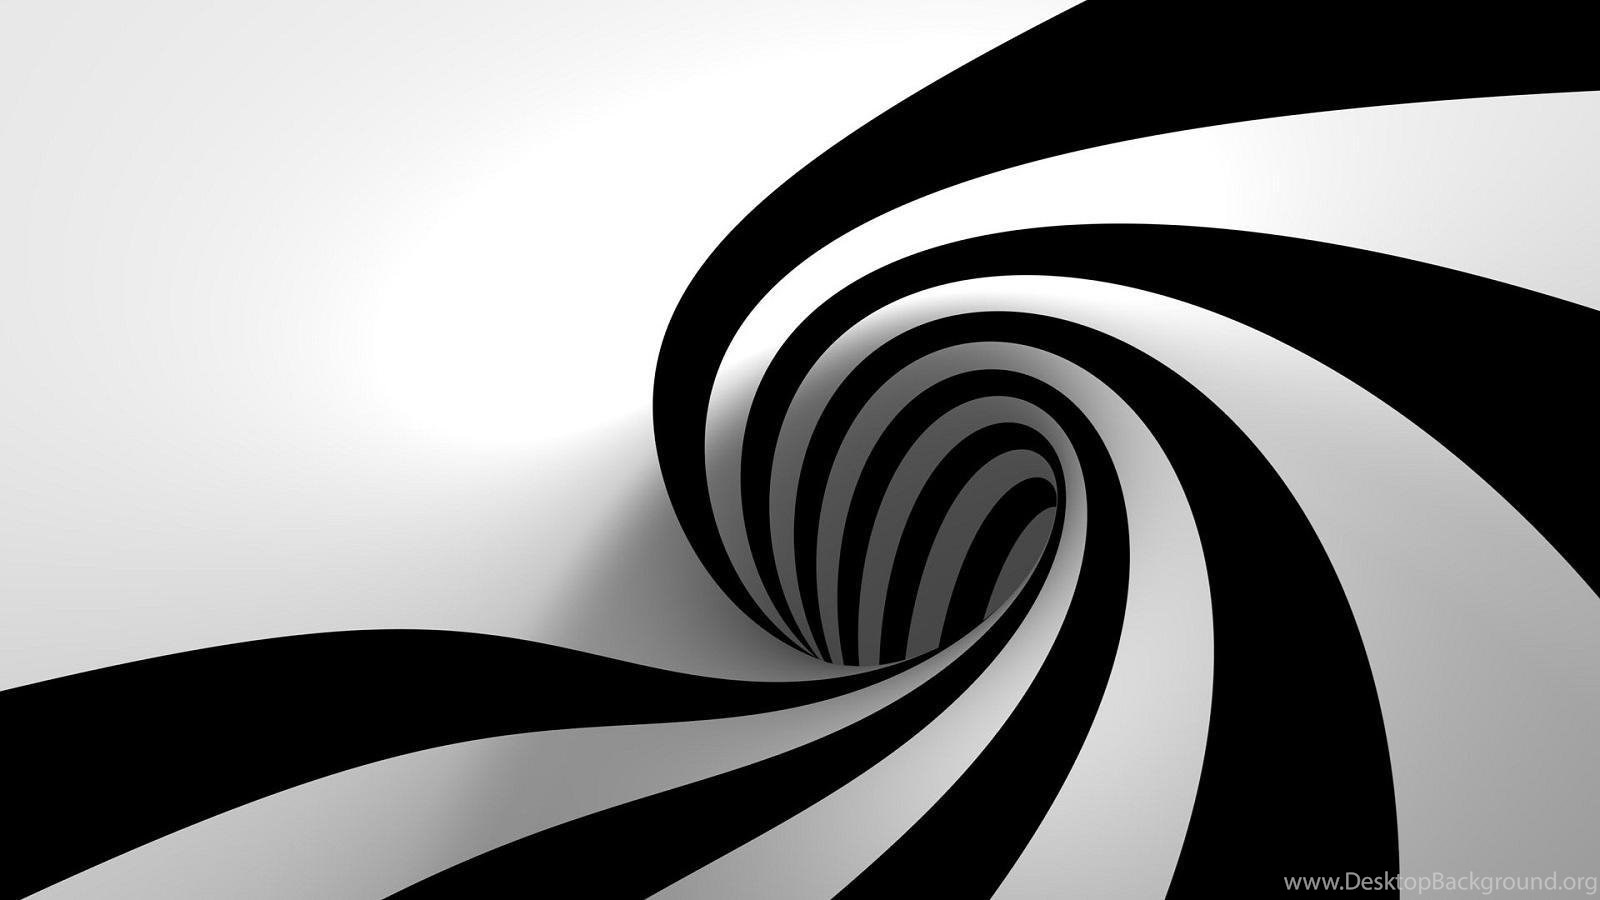 Funny Scary Optical Illusions Eye Tricks 3d Desktop Background